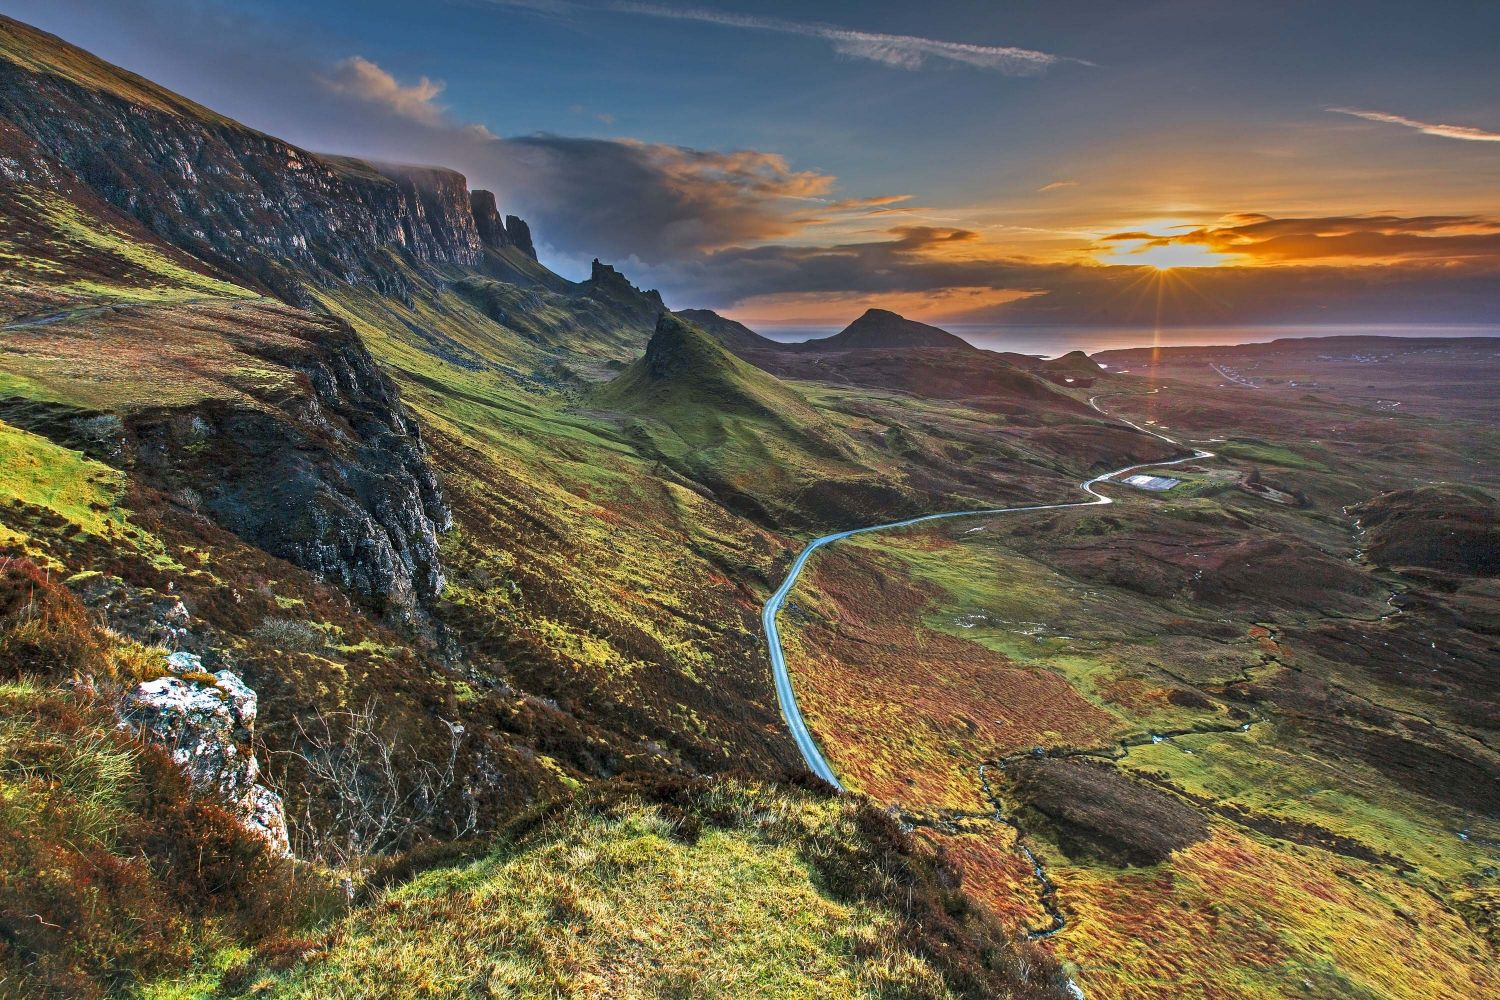 This image shows the sunrise of the Quiraing, Scotland. The sunset is blue and orange toned